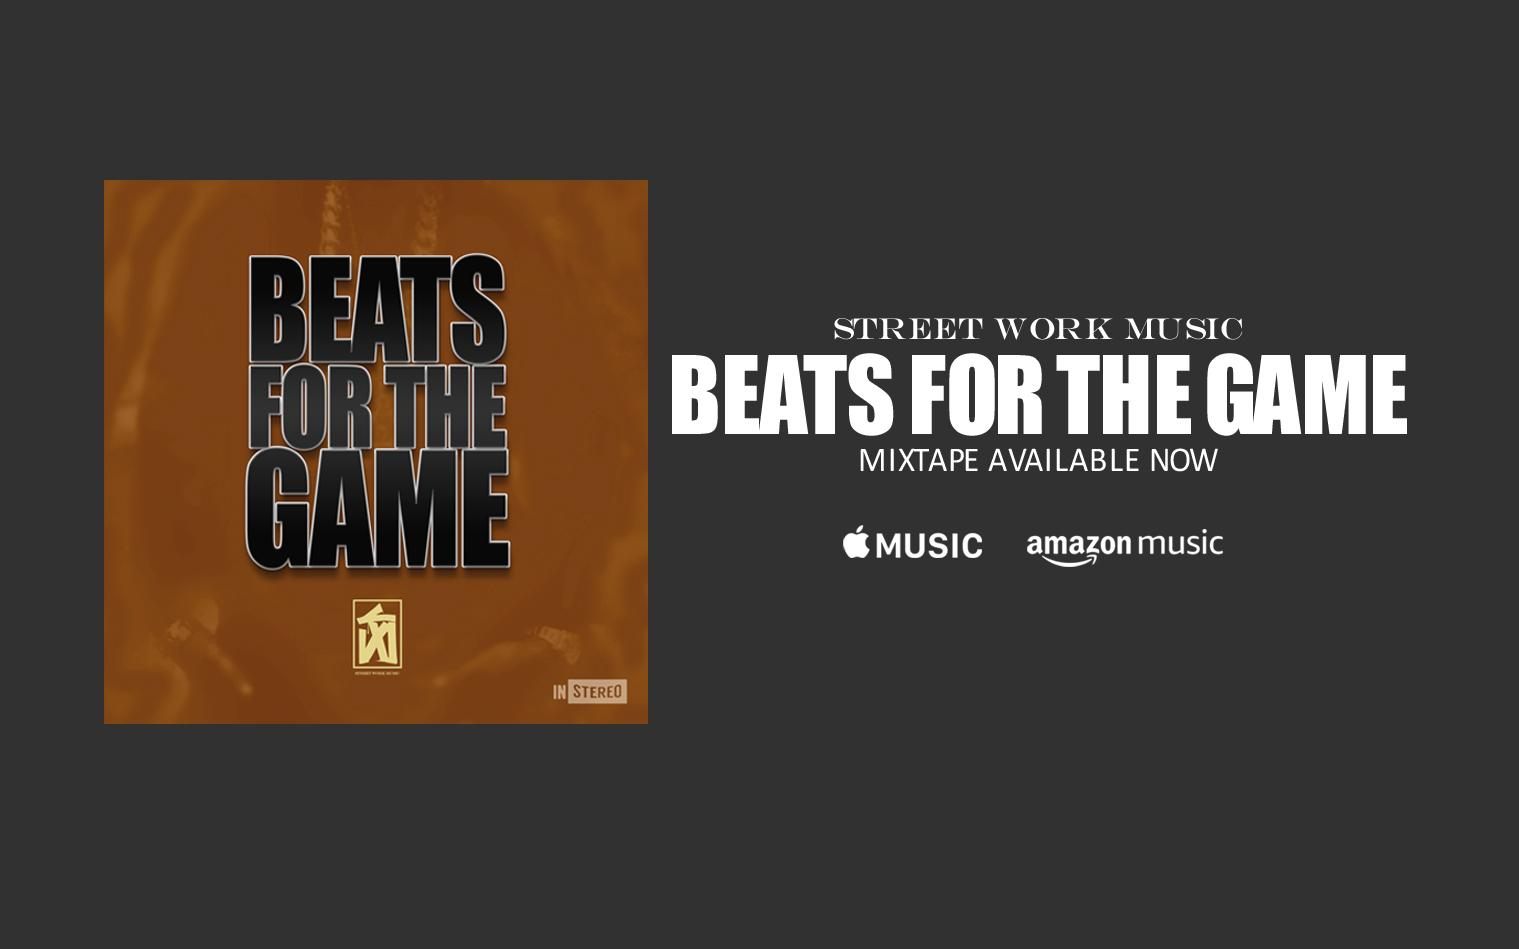 BEATS FOR THE GAME MIXTAPE AVAILABLE WORLDWIDE DECEMBER 25, 2020